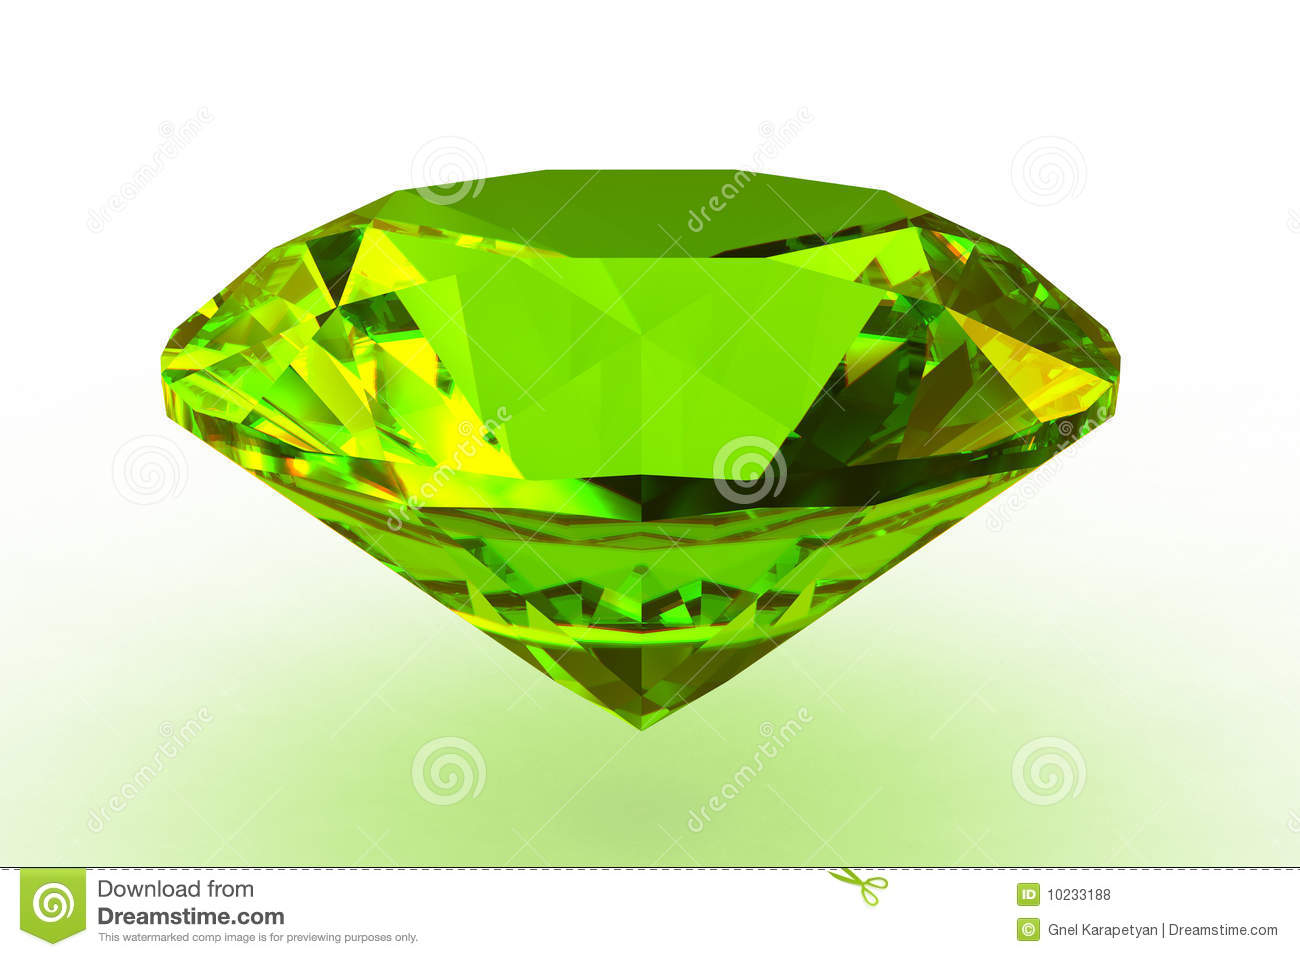 Round Green Topaz Gemstone Royalty Free Stock Photos - Image: 10233188